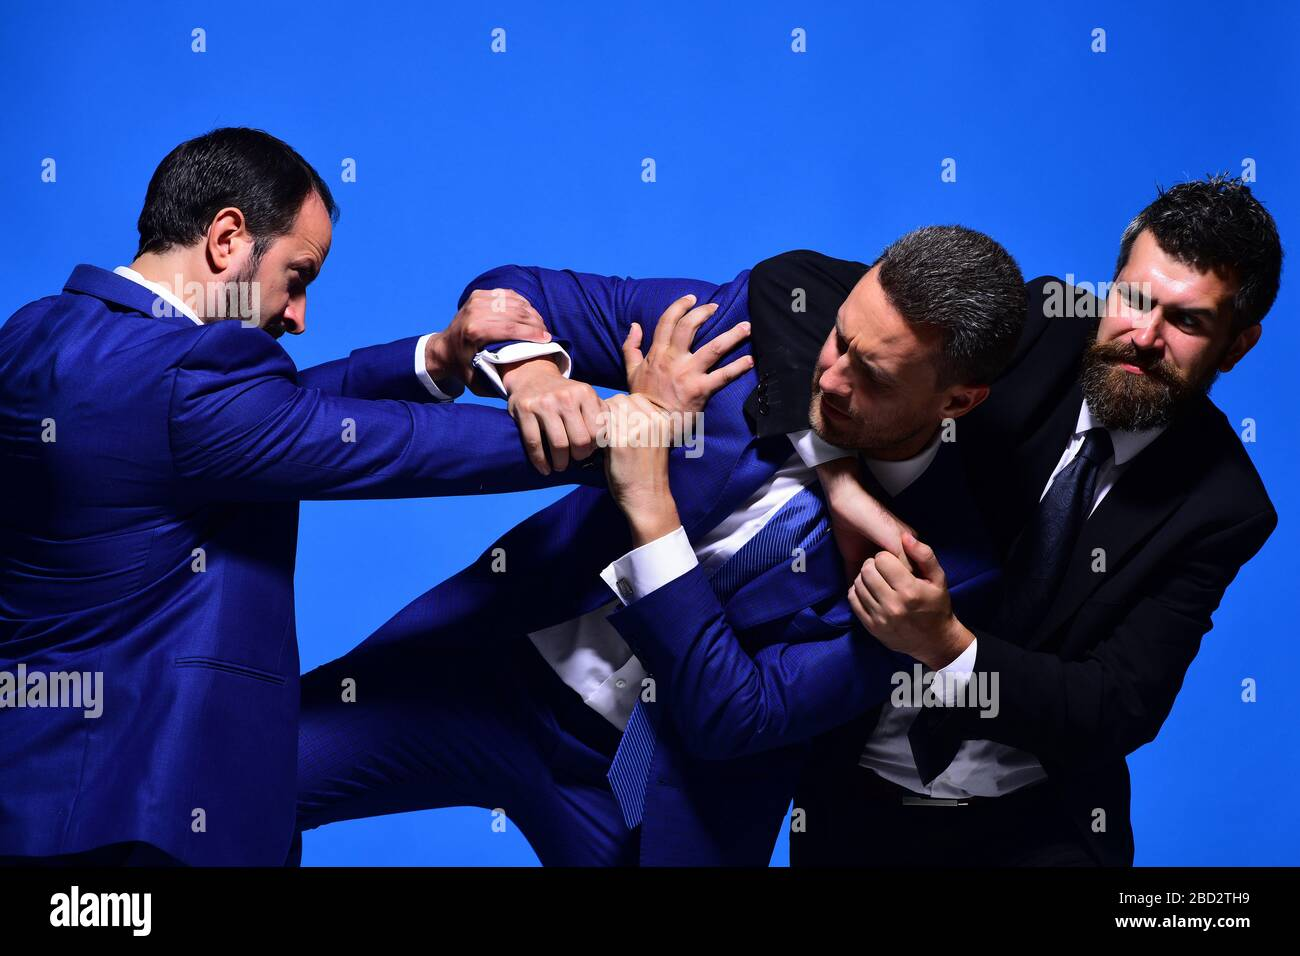 Business conflict and argument concept. Company leaders fight for business leadership. Coworkers decide upon best working position. Businessmen with strict faces in formal suits on blue background Stock Photo